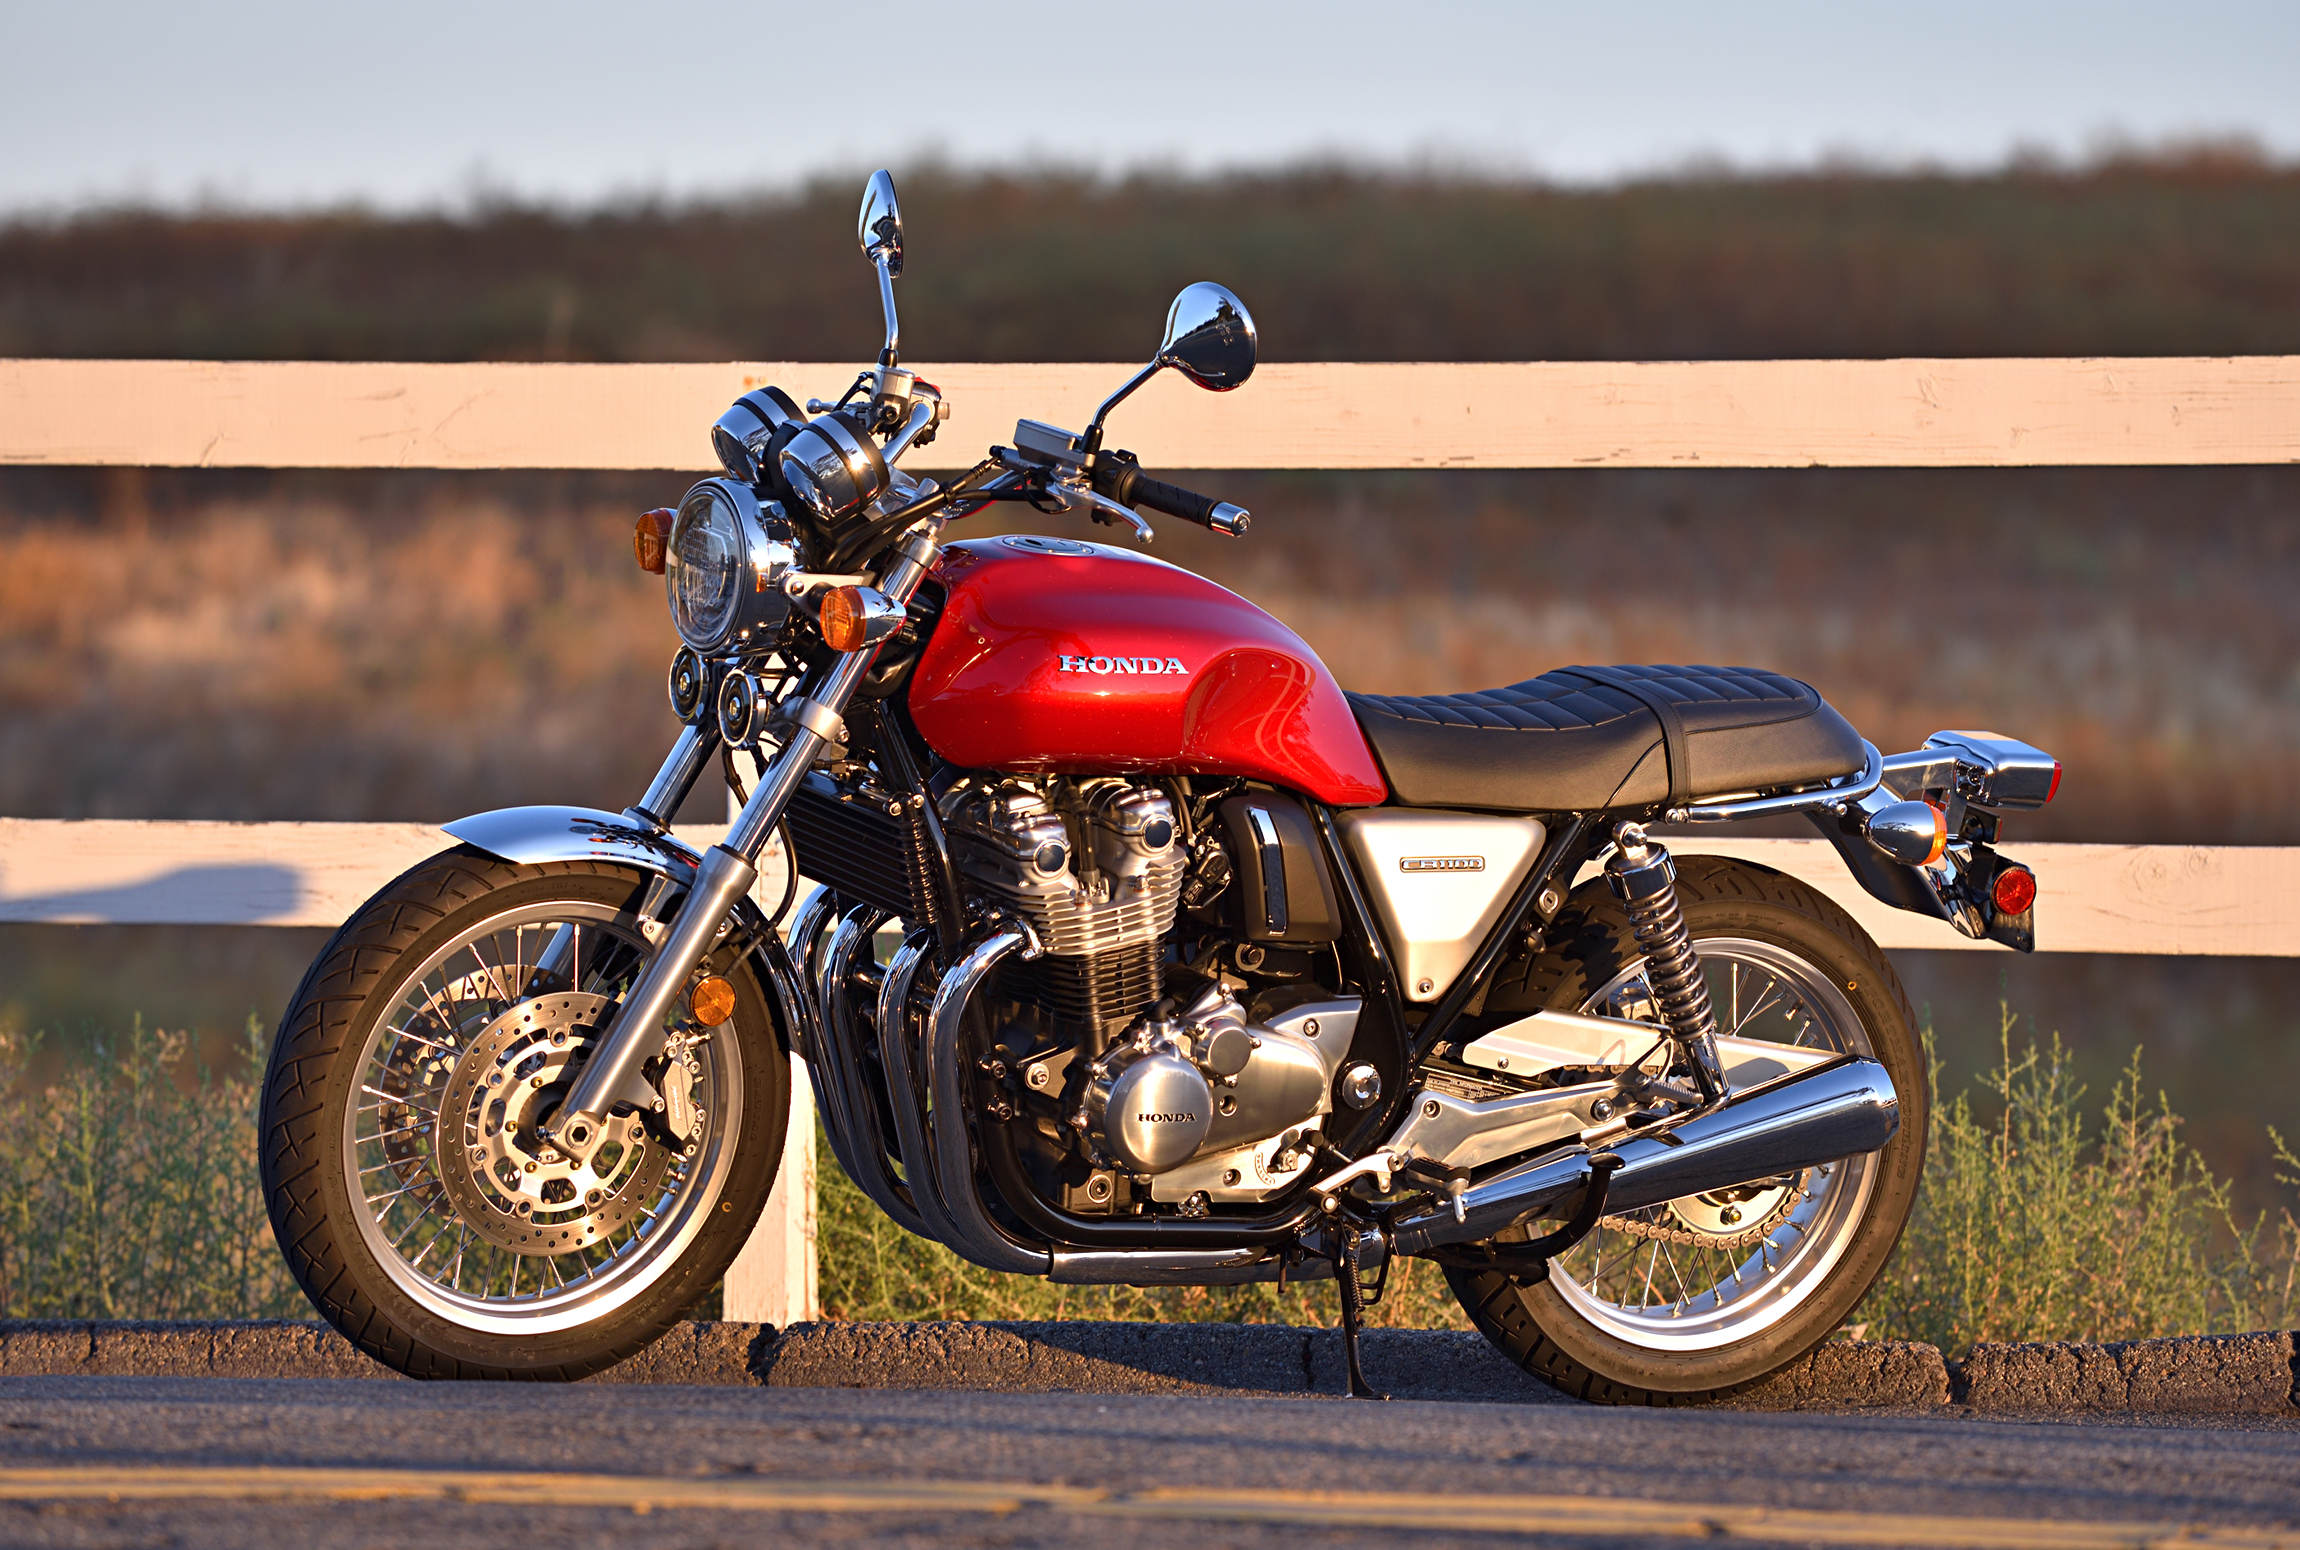 2017 Honda Cb1100 Ex Md Ride Review Motorcycledaily Com